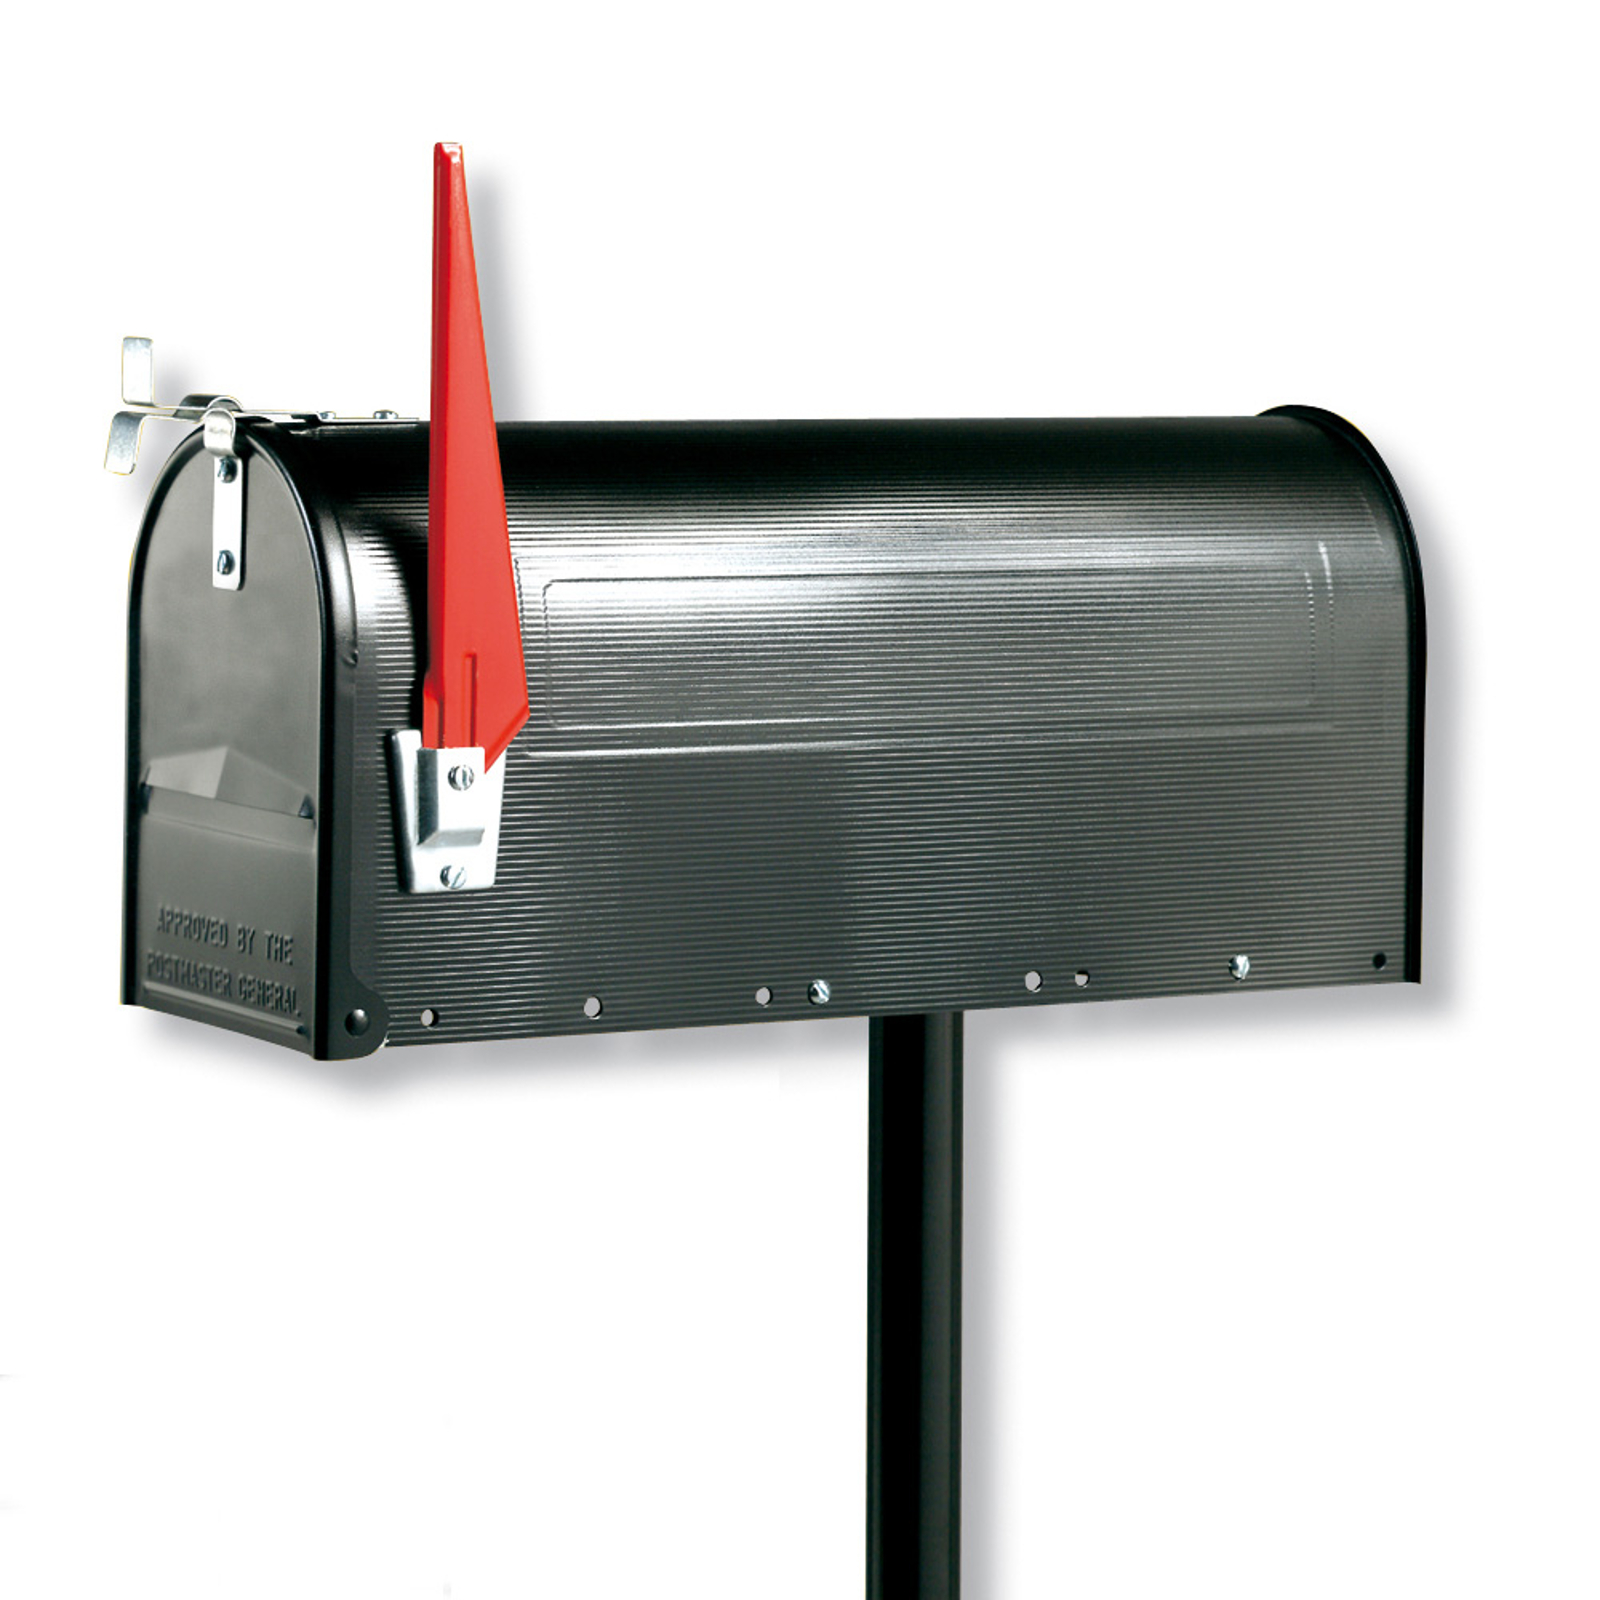 US mailbox with pivotable flag_1532117_1